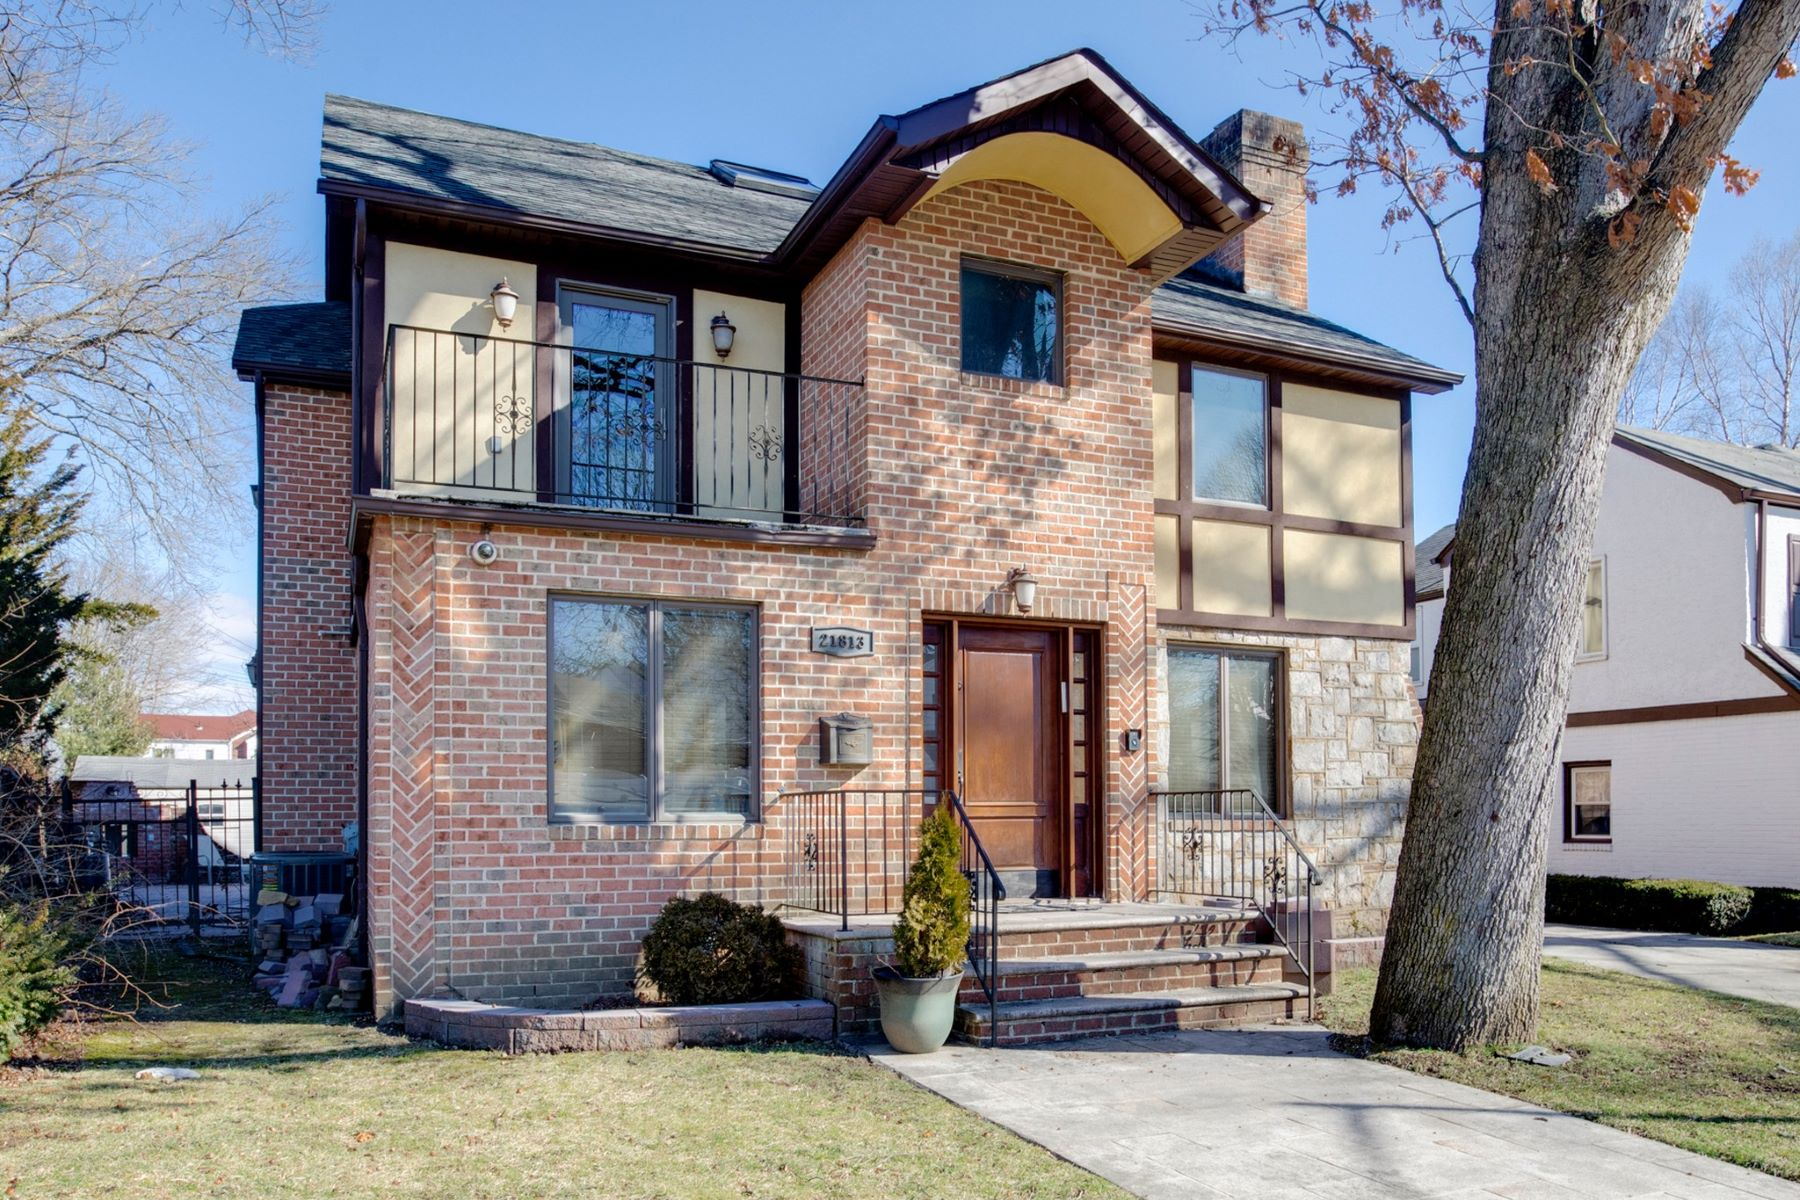 Single Family Homes for Sale at Hollis Hills 218-13 82 Avenue Queens Village, New York 11427 United States